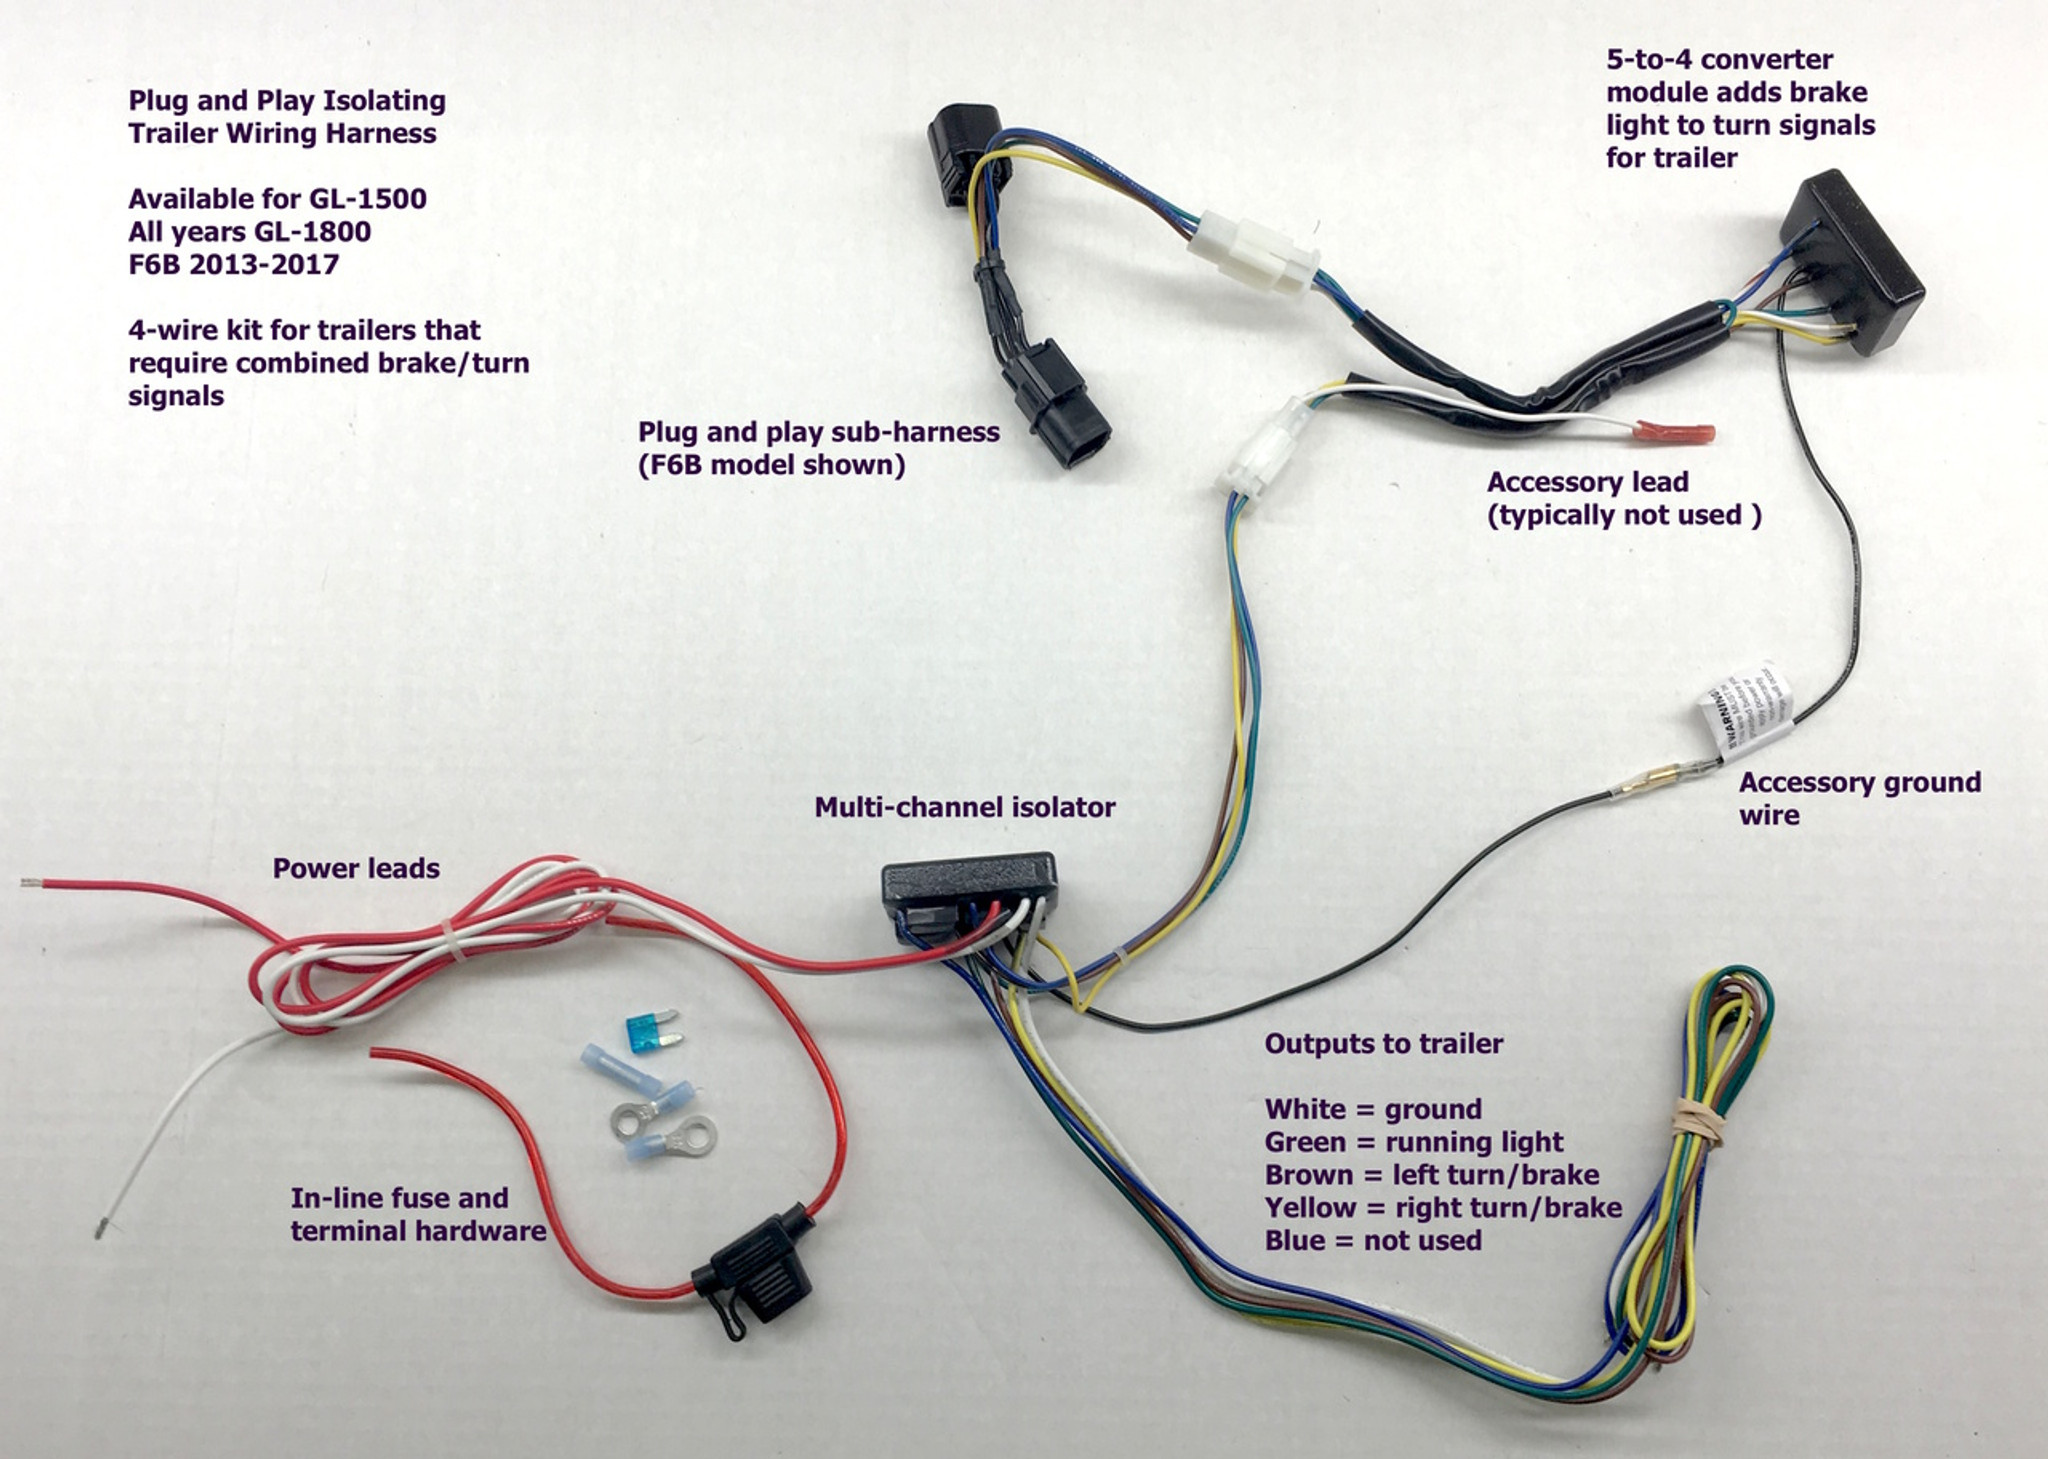 hight resolution of  gold wing 4 wire trailer wiring harness f6b plug and play connector